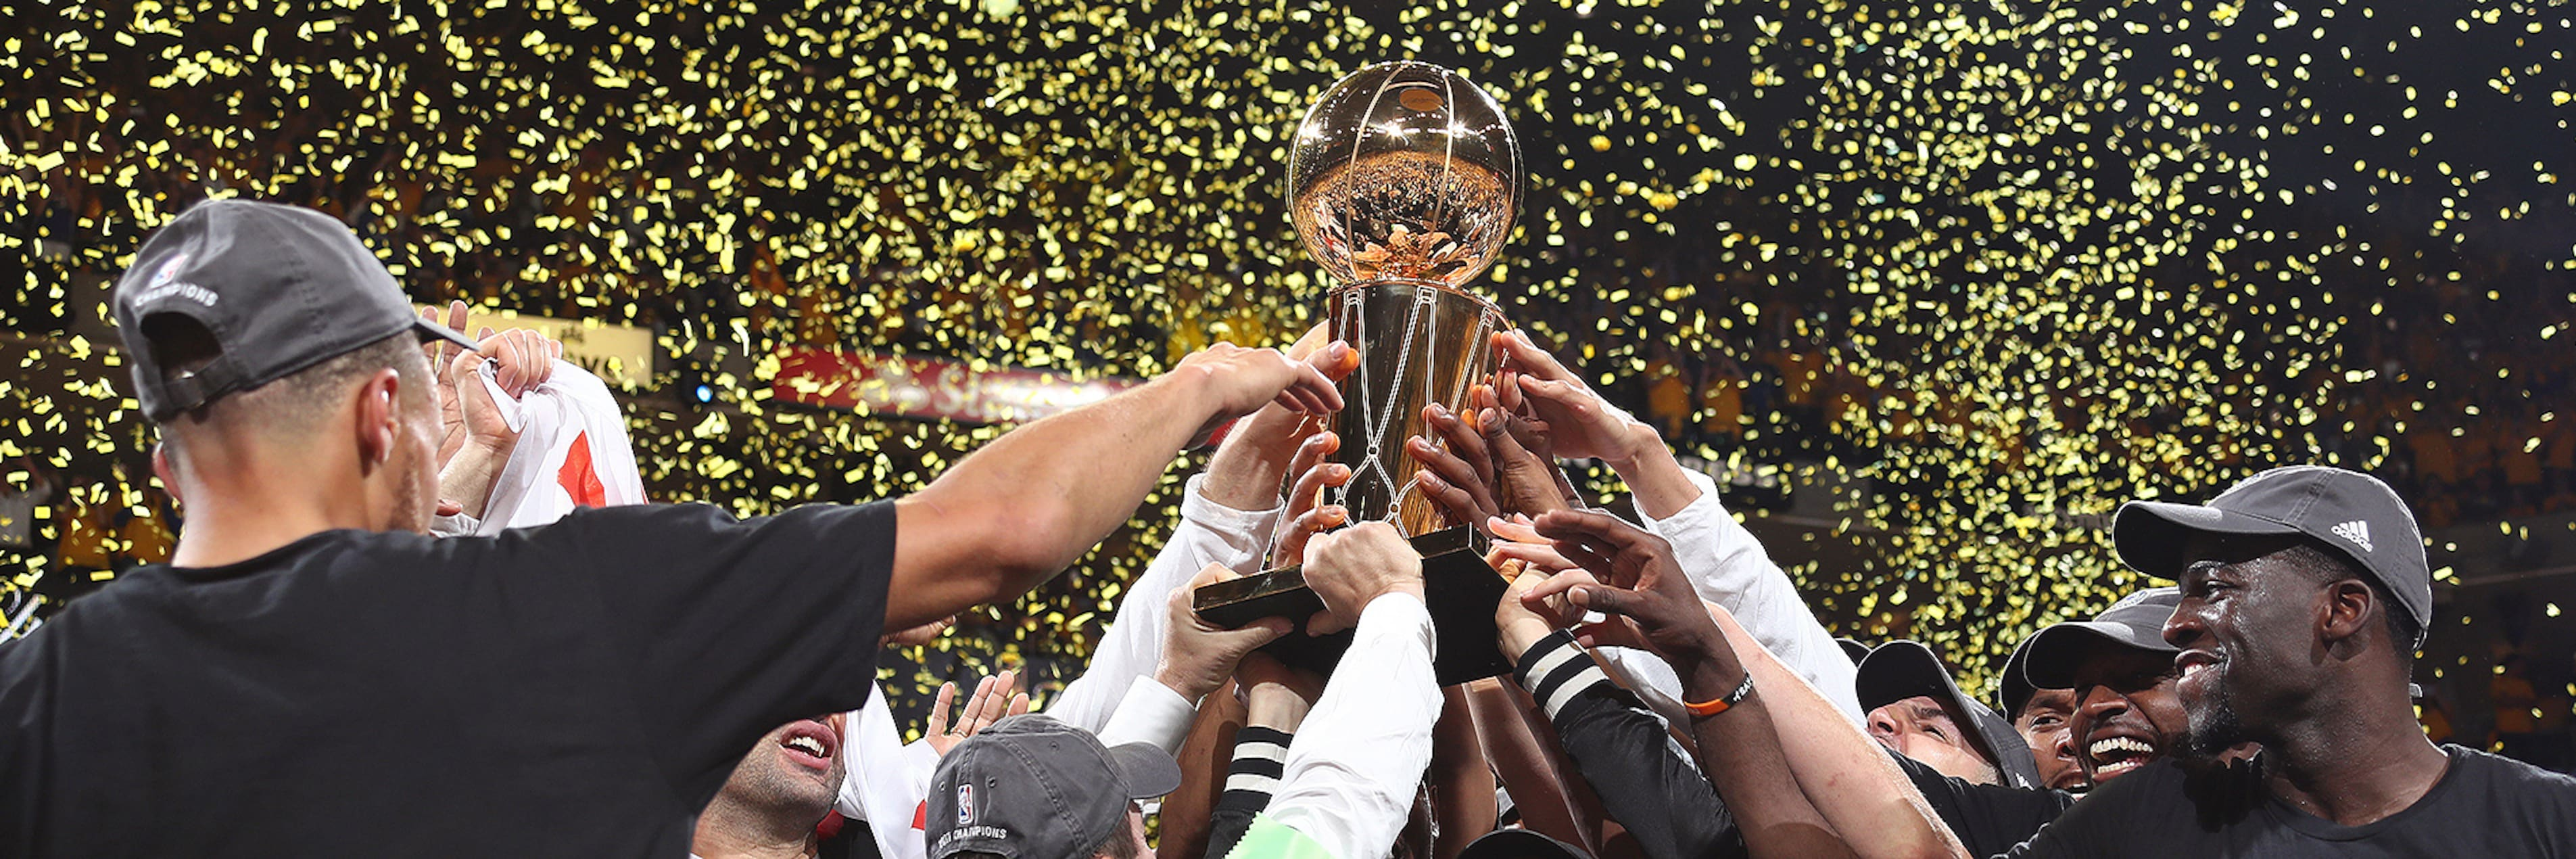 2017: The Year of the Dubs